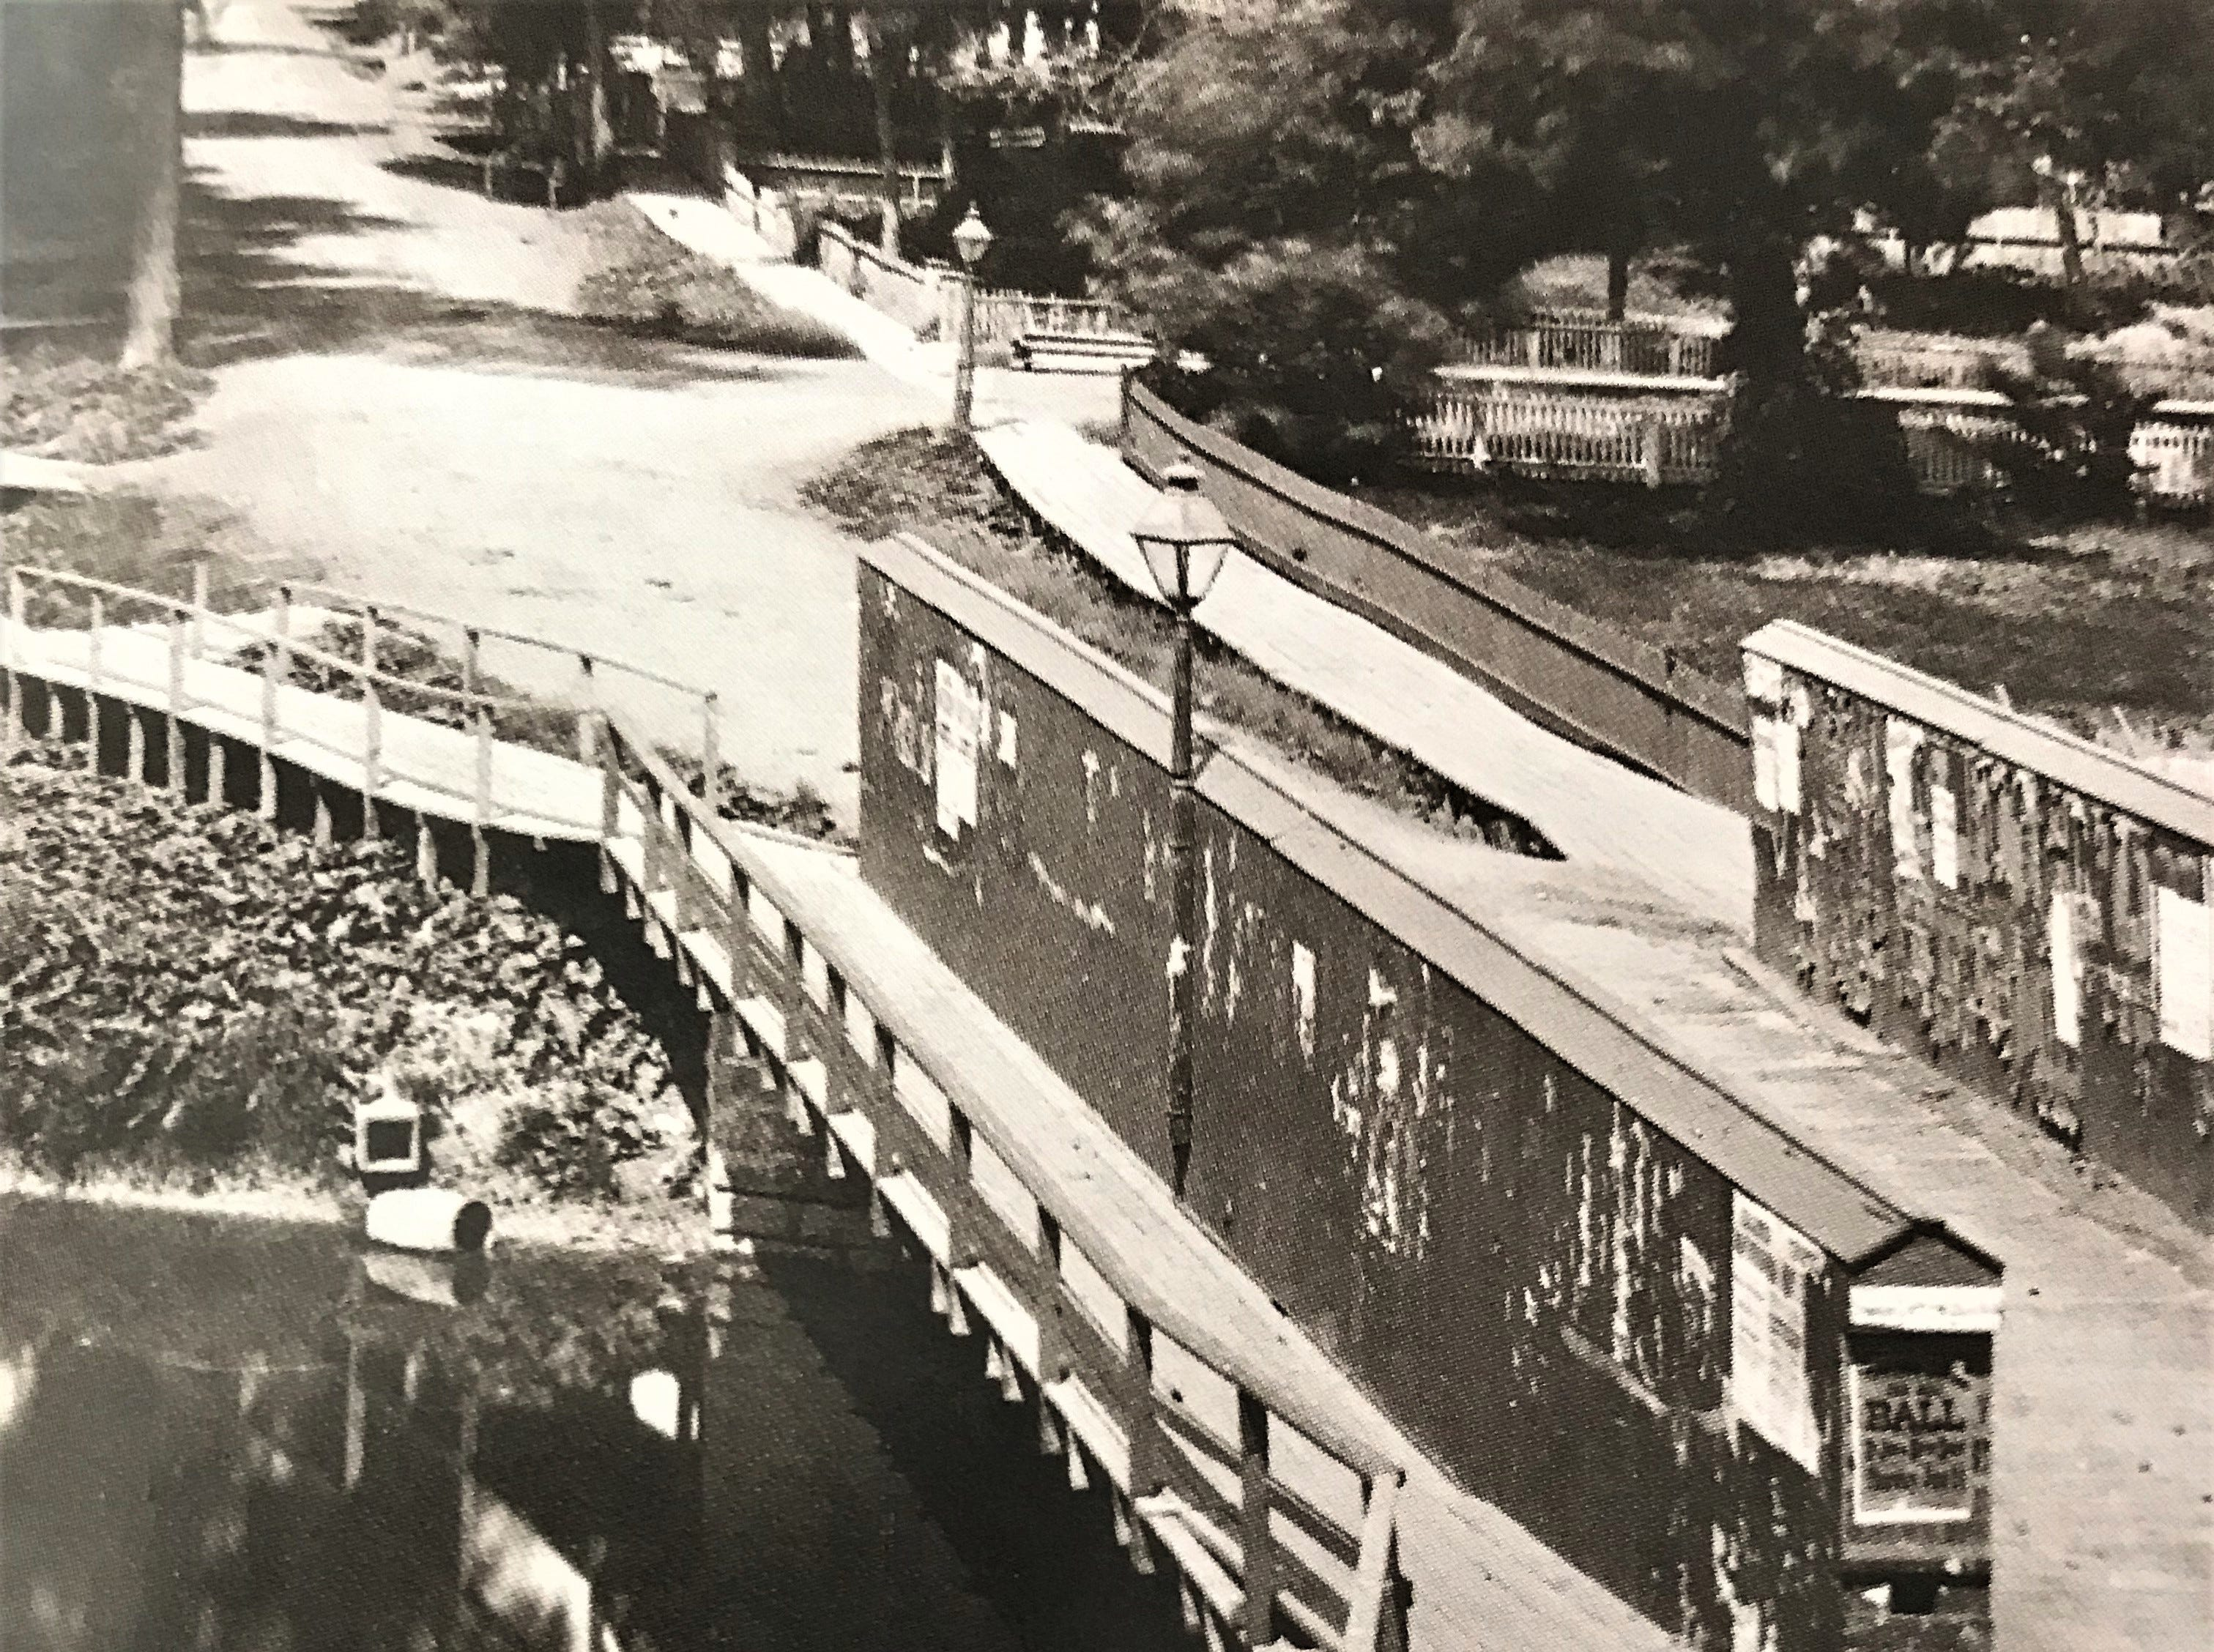 A wooden bridge on Forest Avenue over the east branch of the Fond du Lac River in 1874 , about a block and a half west of Main Street, is representative of bridges in Fond du Lac in the 1870s. Handbills are attached to the wall of the bridge.